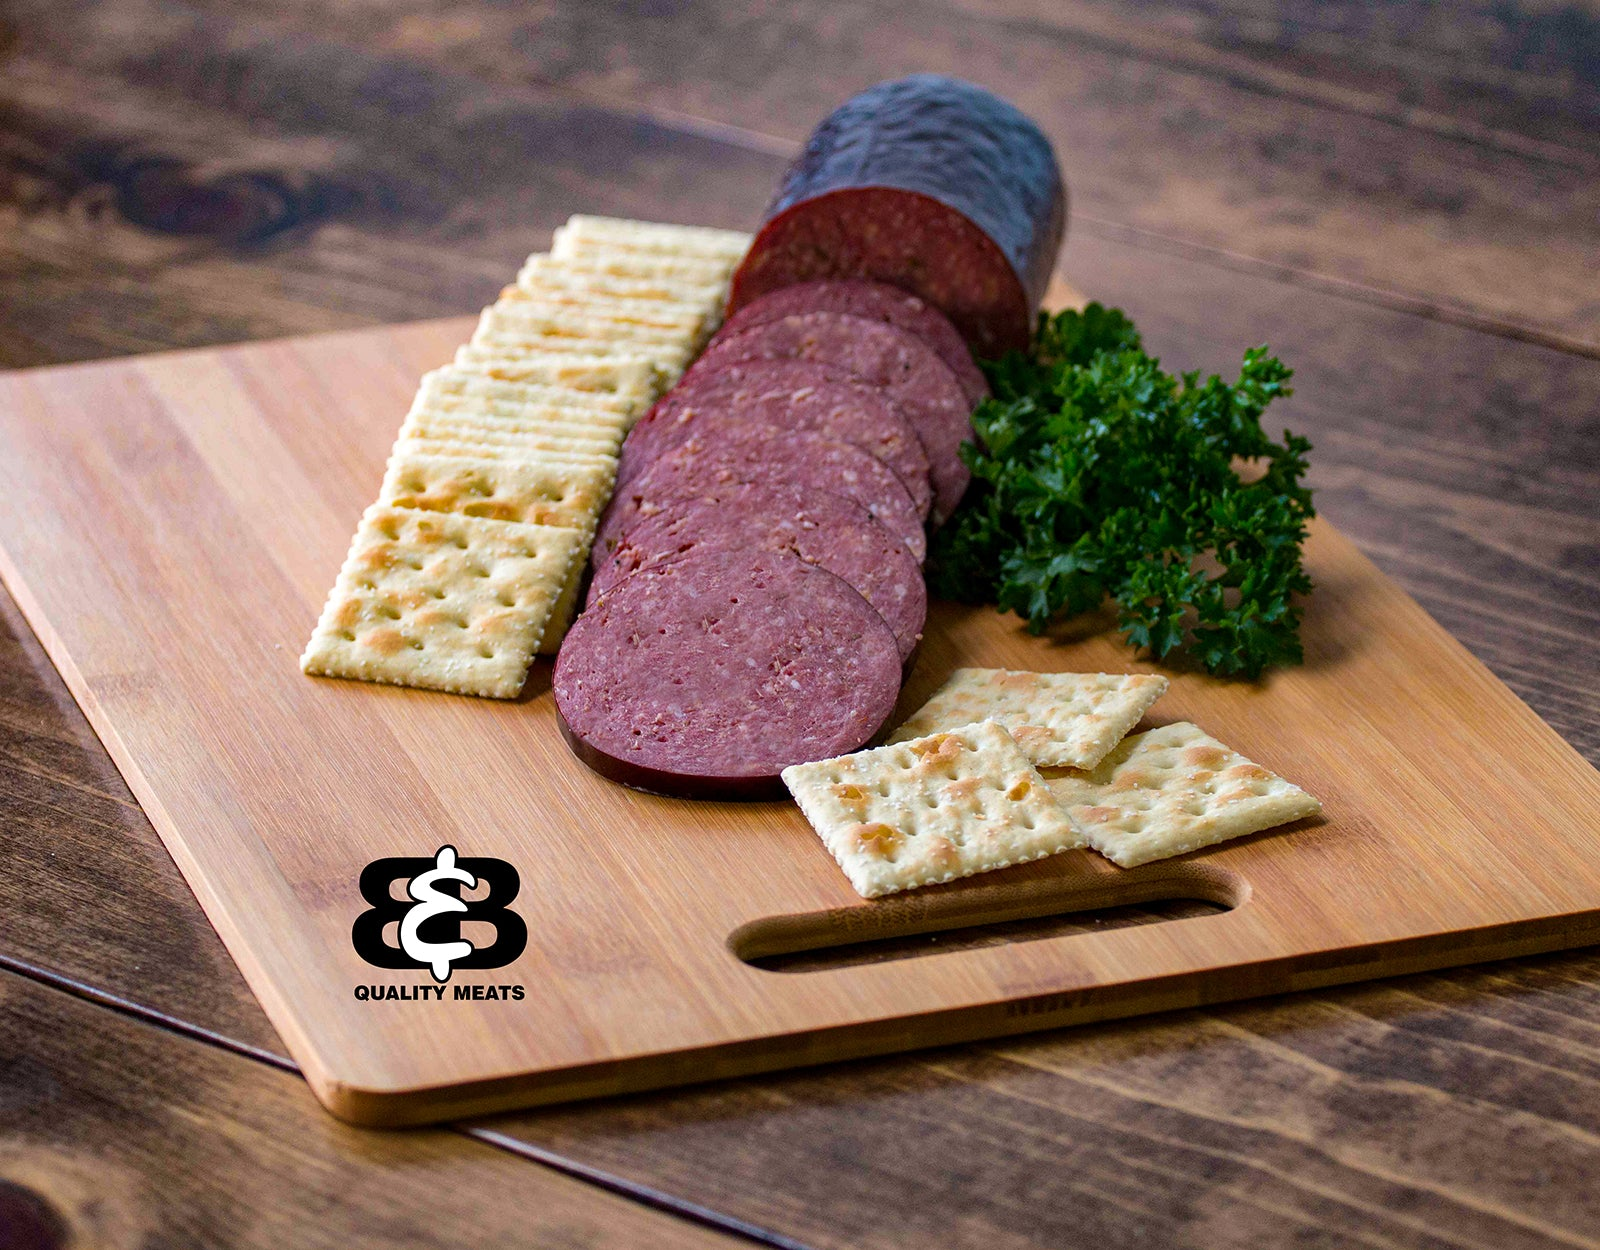 Mild Summer Sausage (1lb.) - B&B Quality Meats